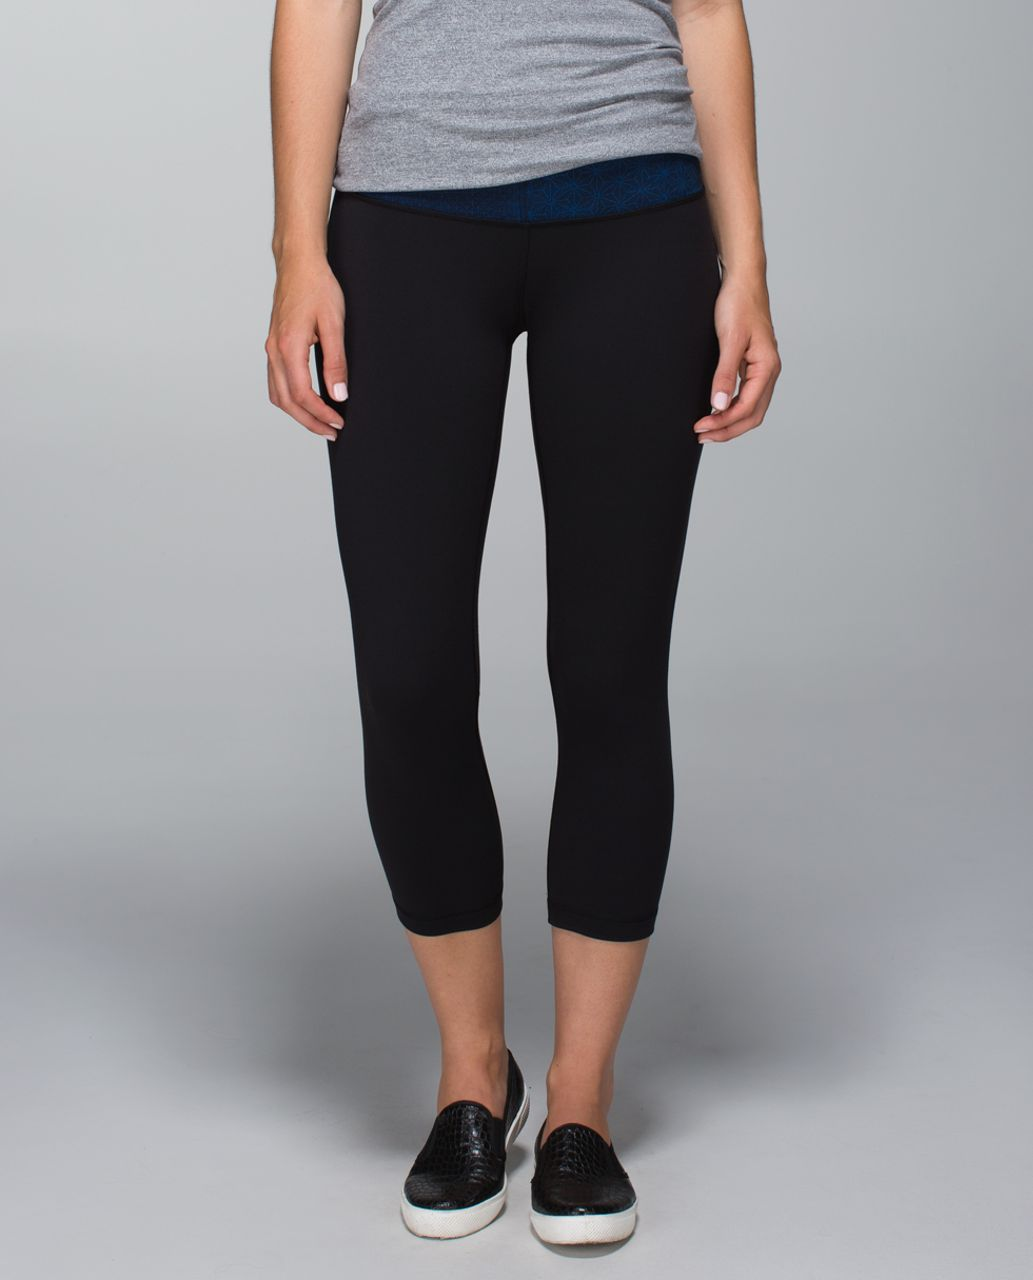 Lululemon Wunder Under Crop II *Full-On Luon - Black / Fa14 Quilt 1 / Sashico Star Inkwell Rugged Blue